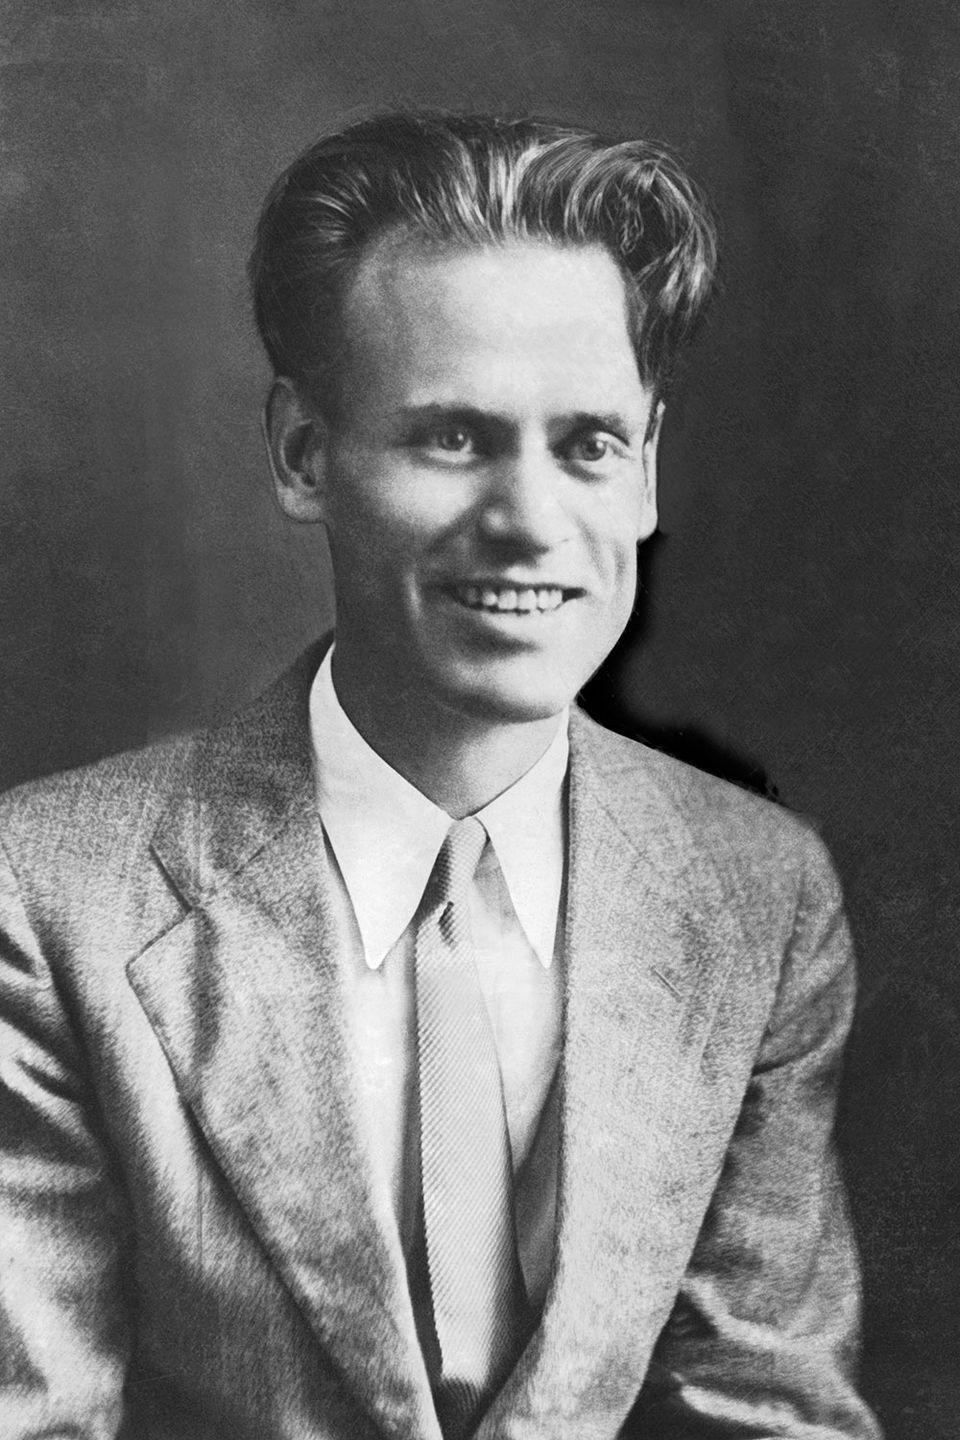 <p>One of the men credited with inventing television was only 14 when he came up with the idea. He had an epiphany while plowing his family's farm in Idaho and sought advice from one of his teachers on how best to make his blackboard sketches a reality. Farnsworth transmitted his first image in 1927 when he was 21 years old.</p>